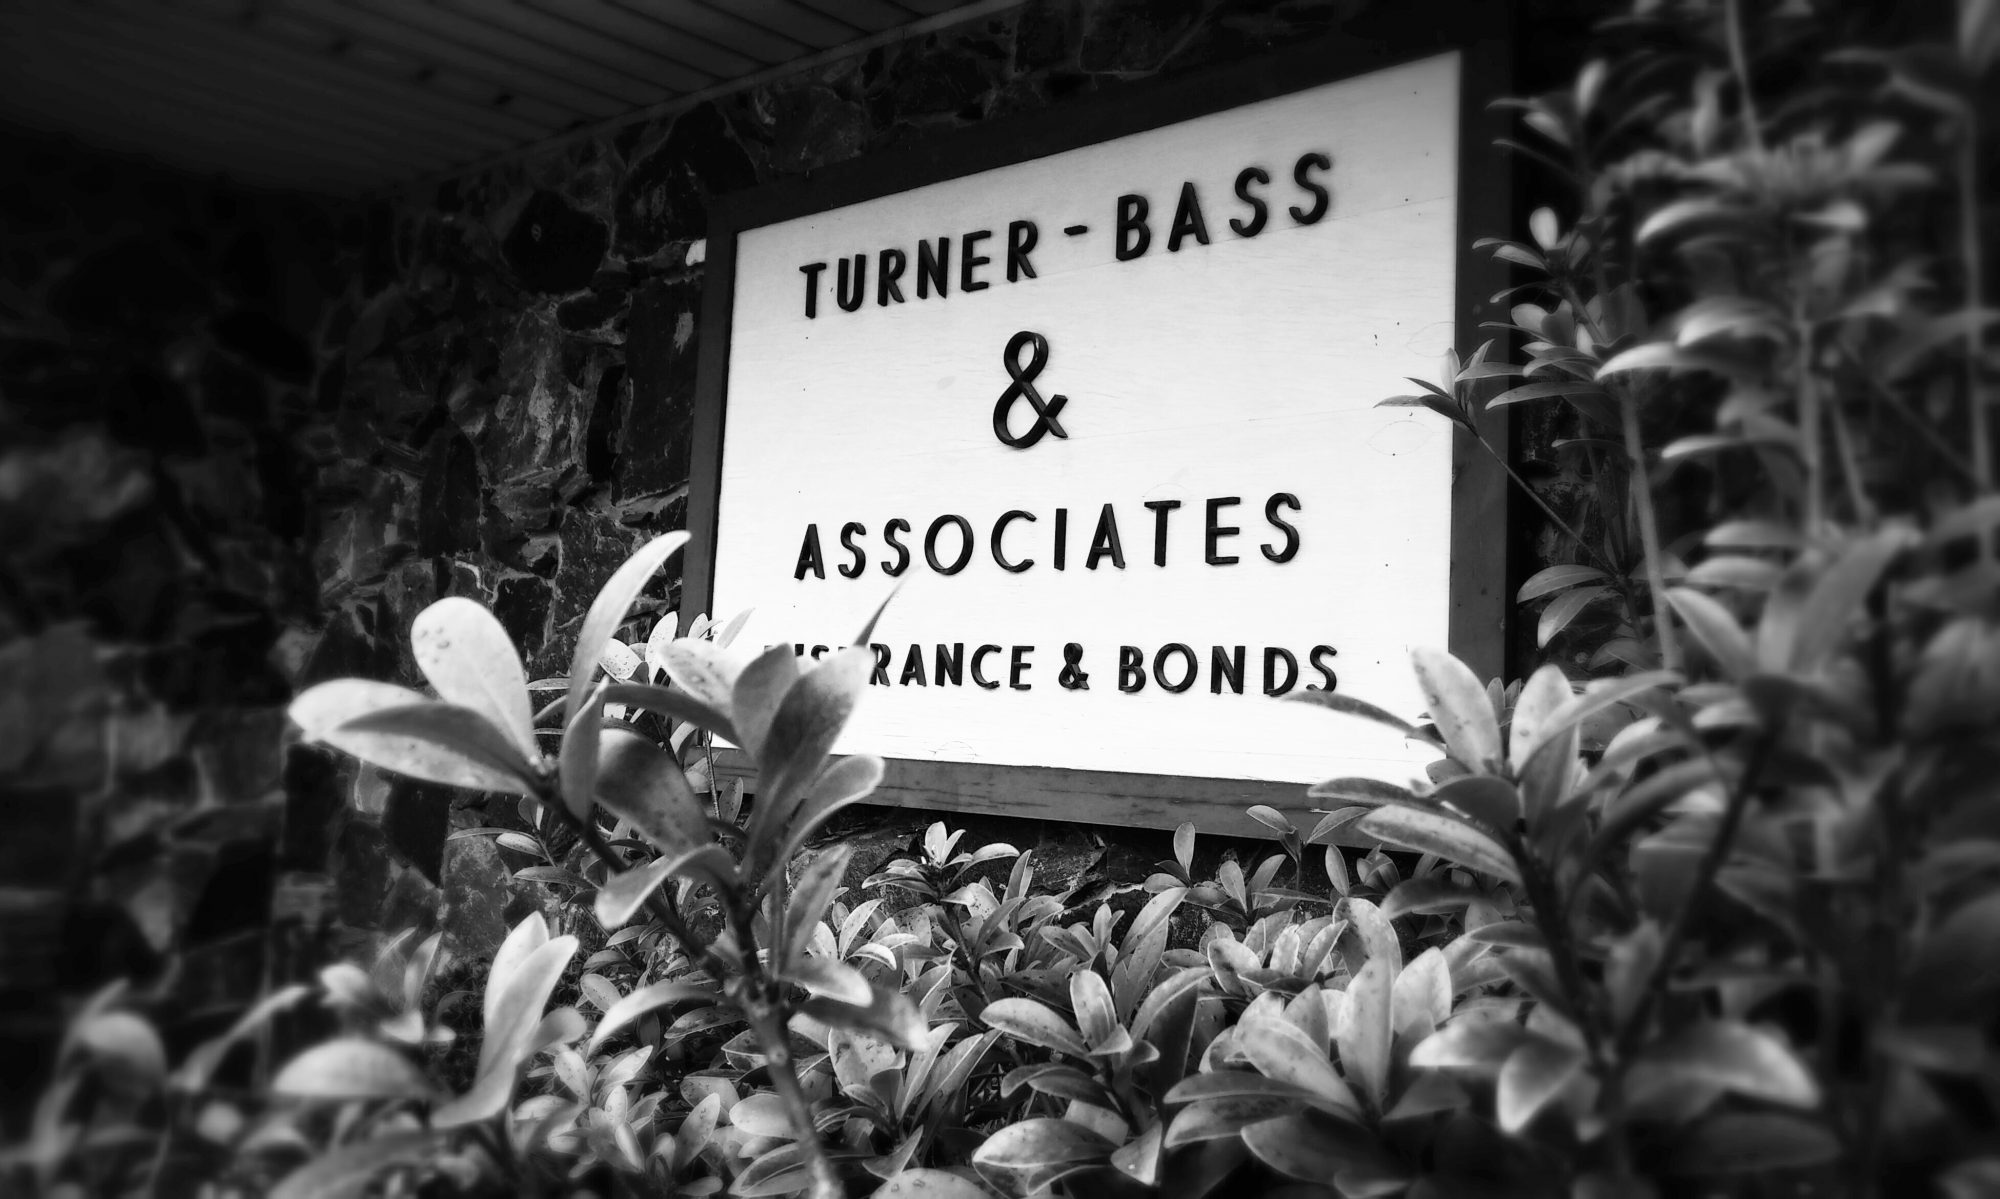 Turner Bass and Associates